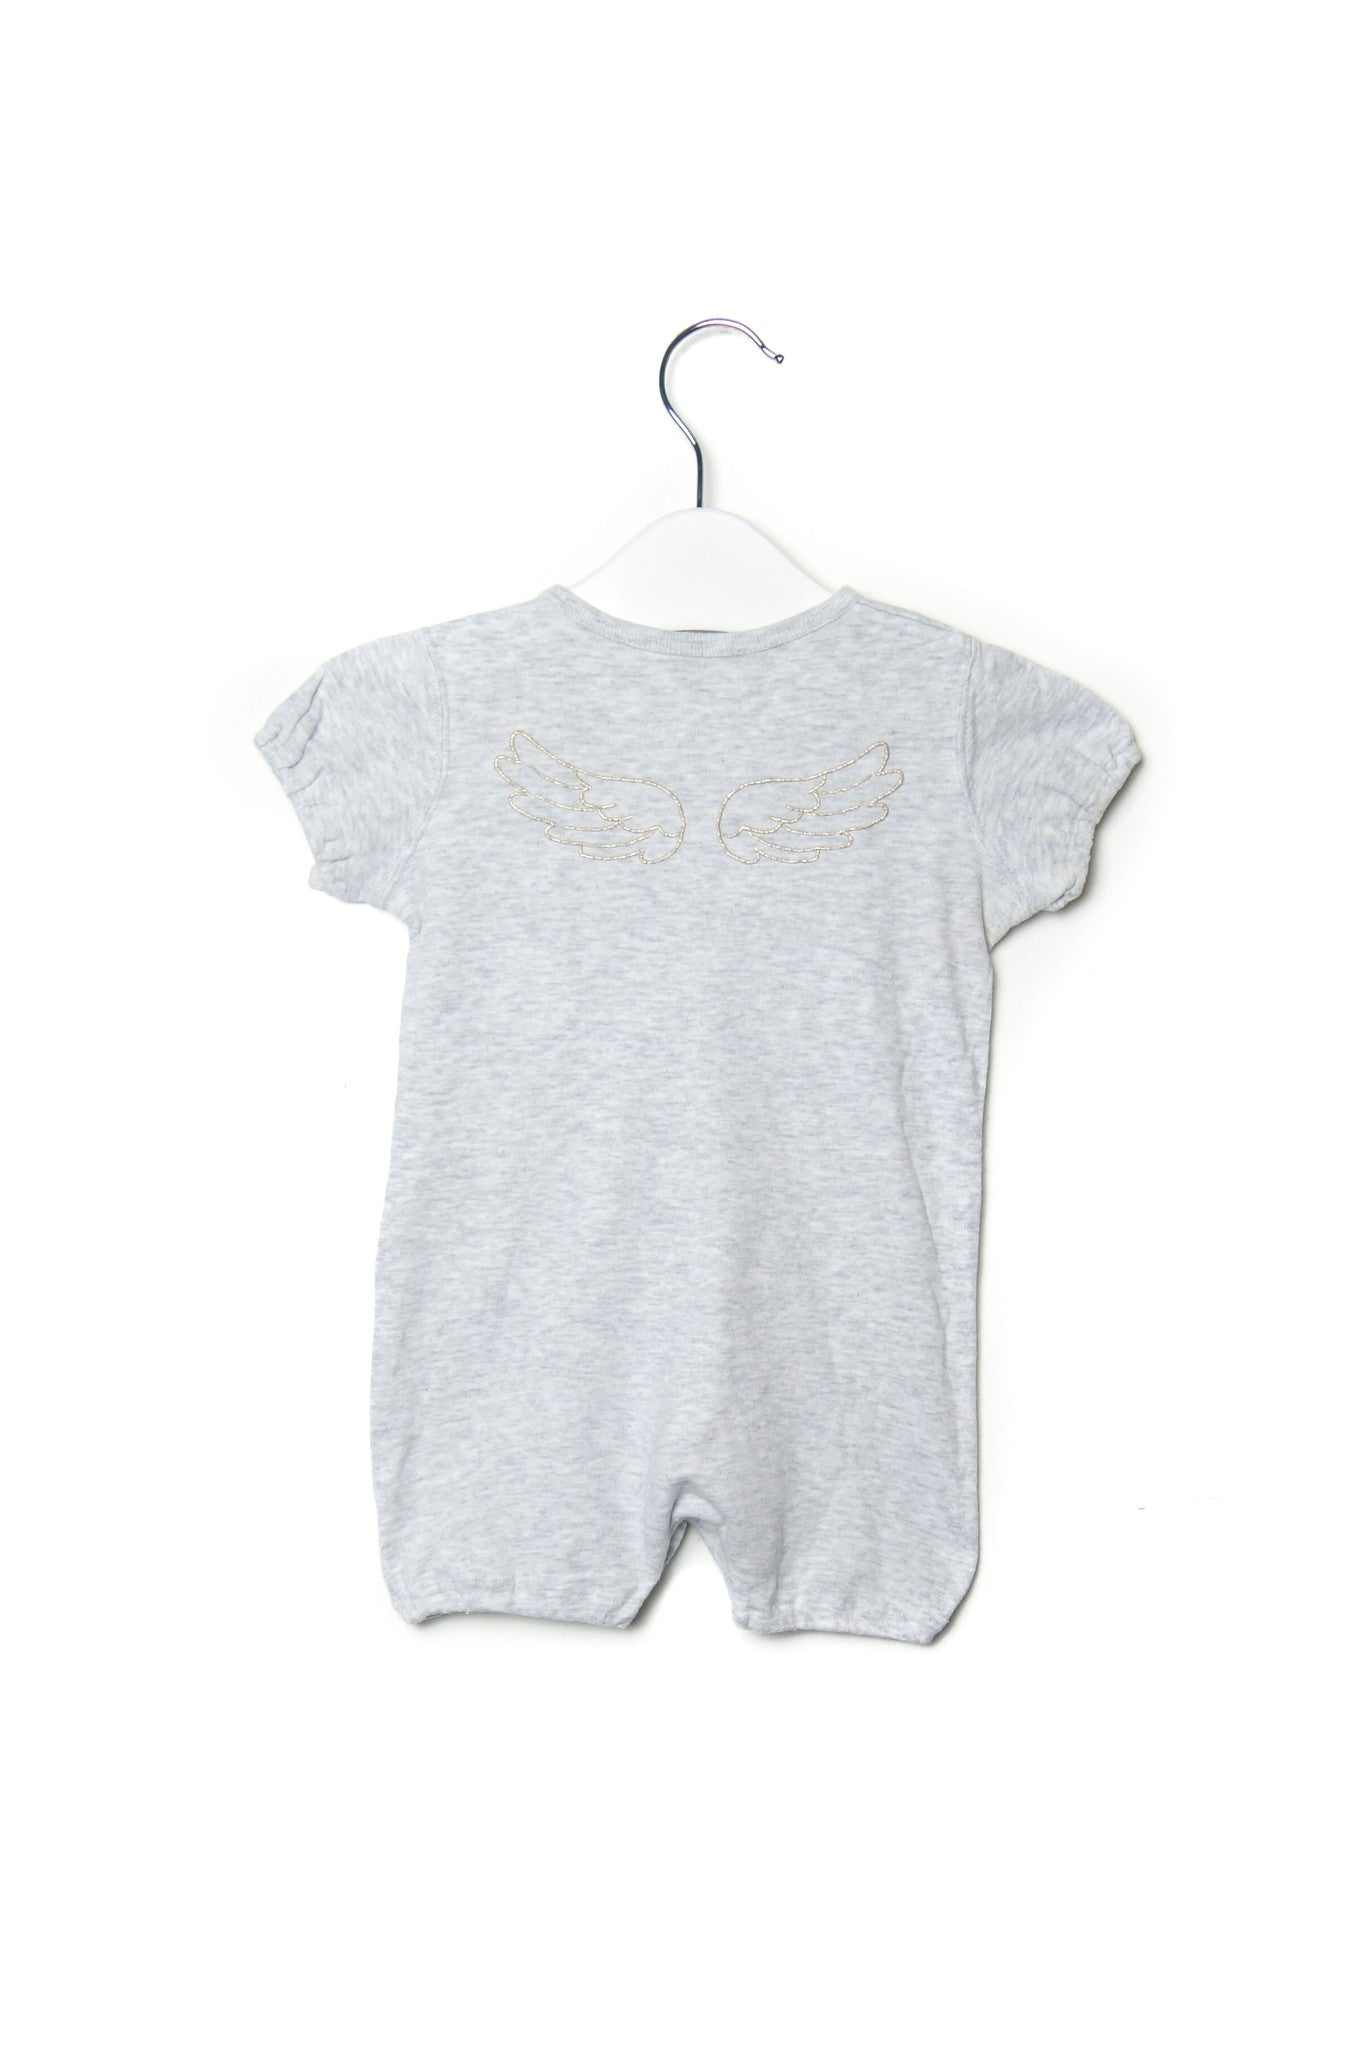 10001859 Comme Ca Ism Baby~Romper 0-3M at Retykle